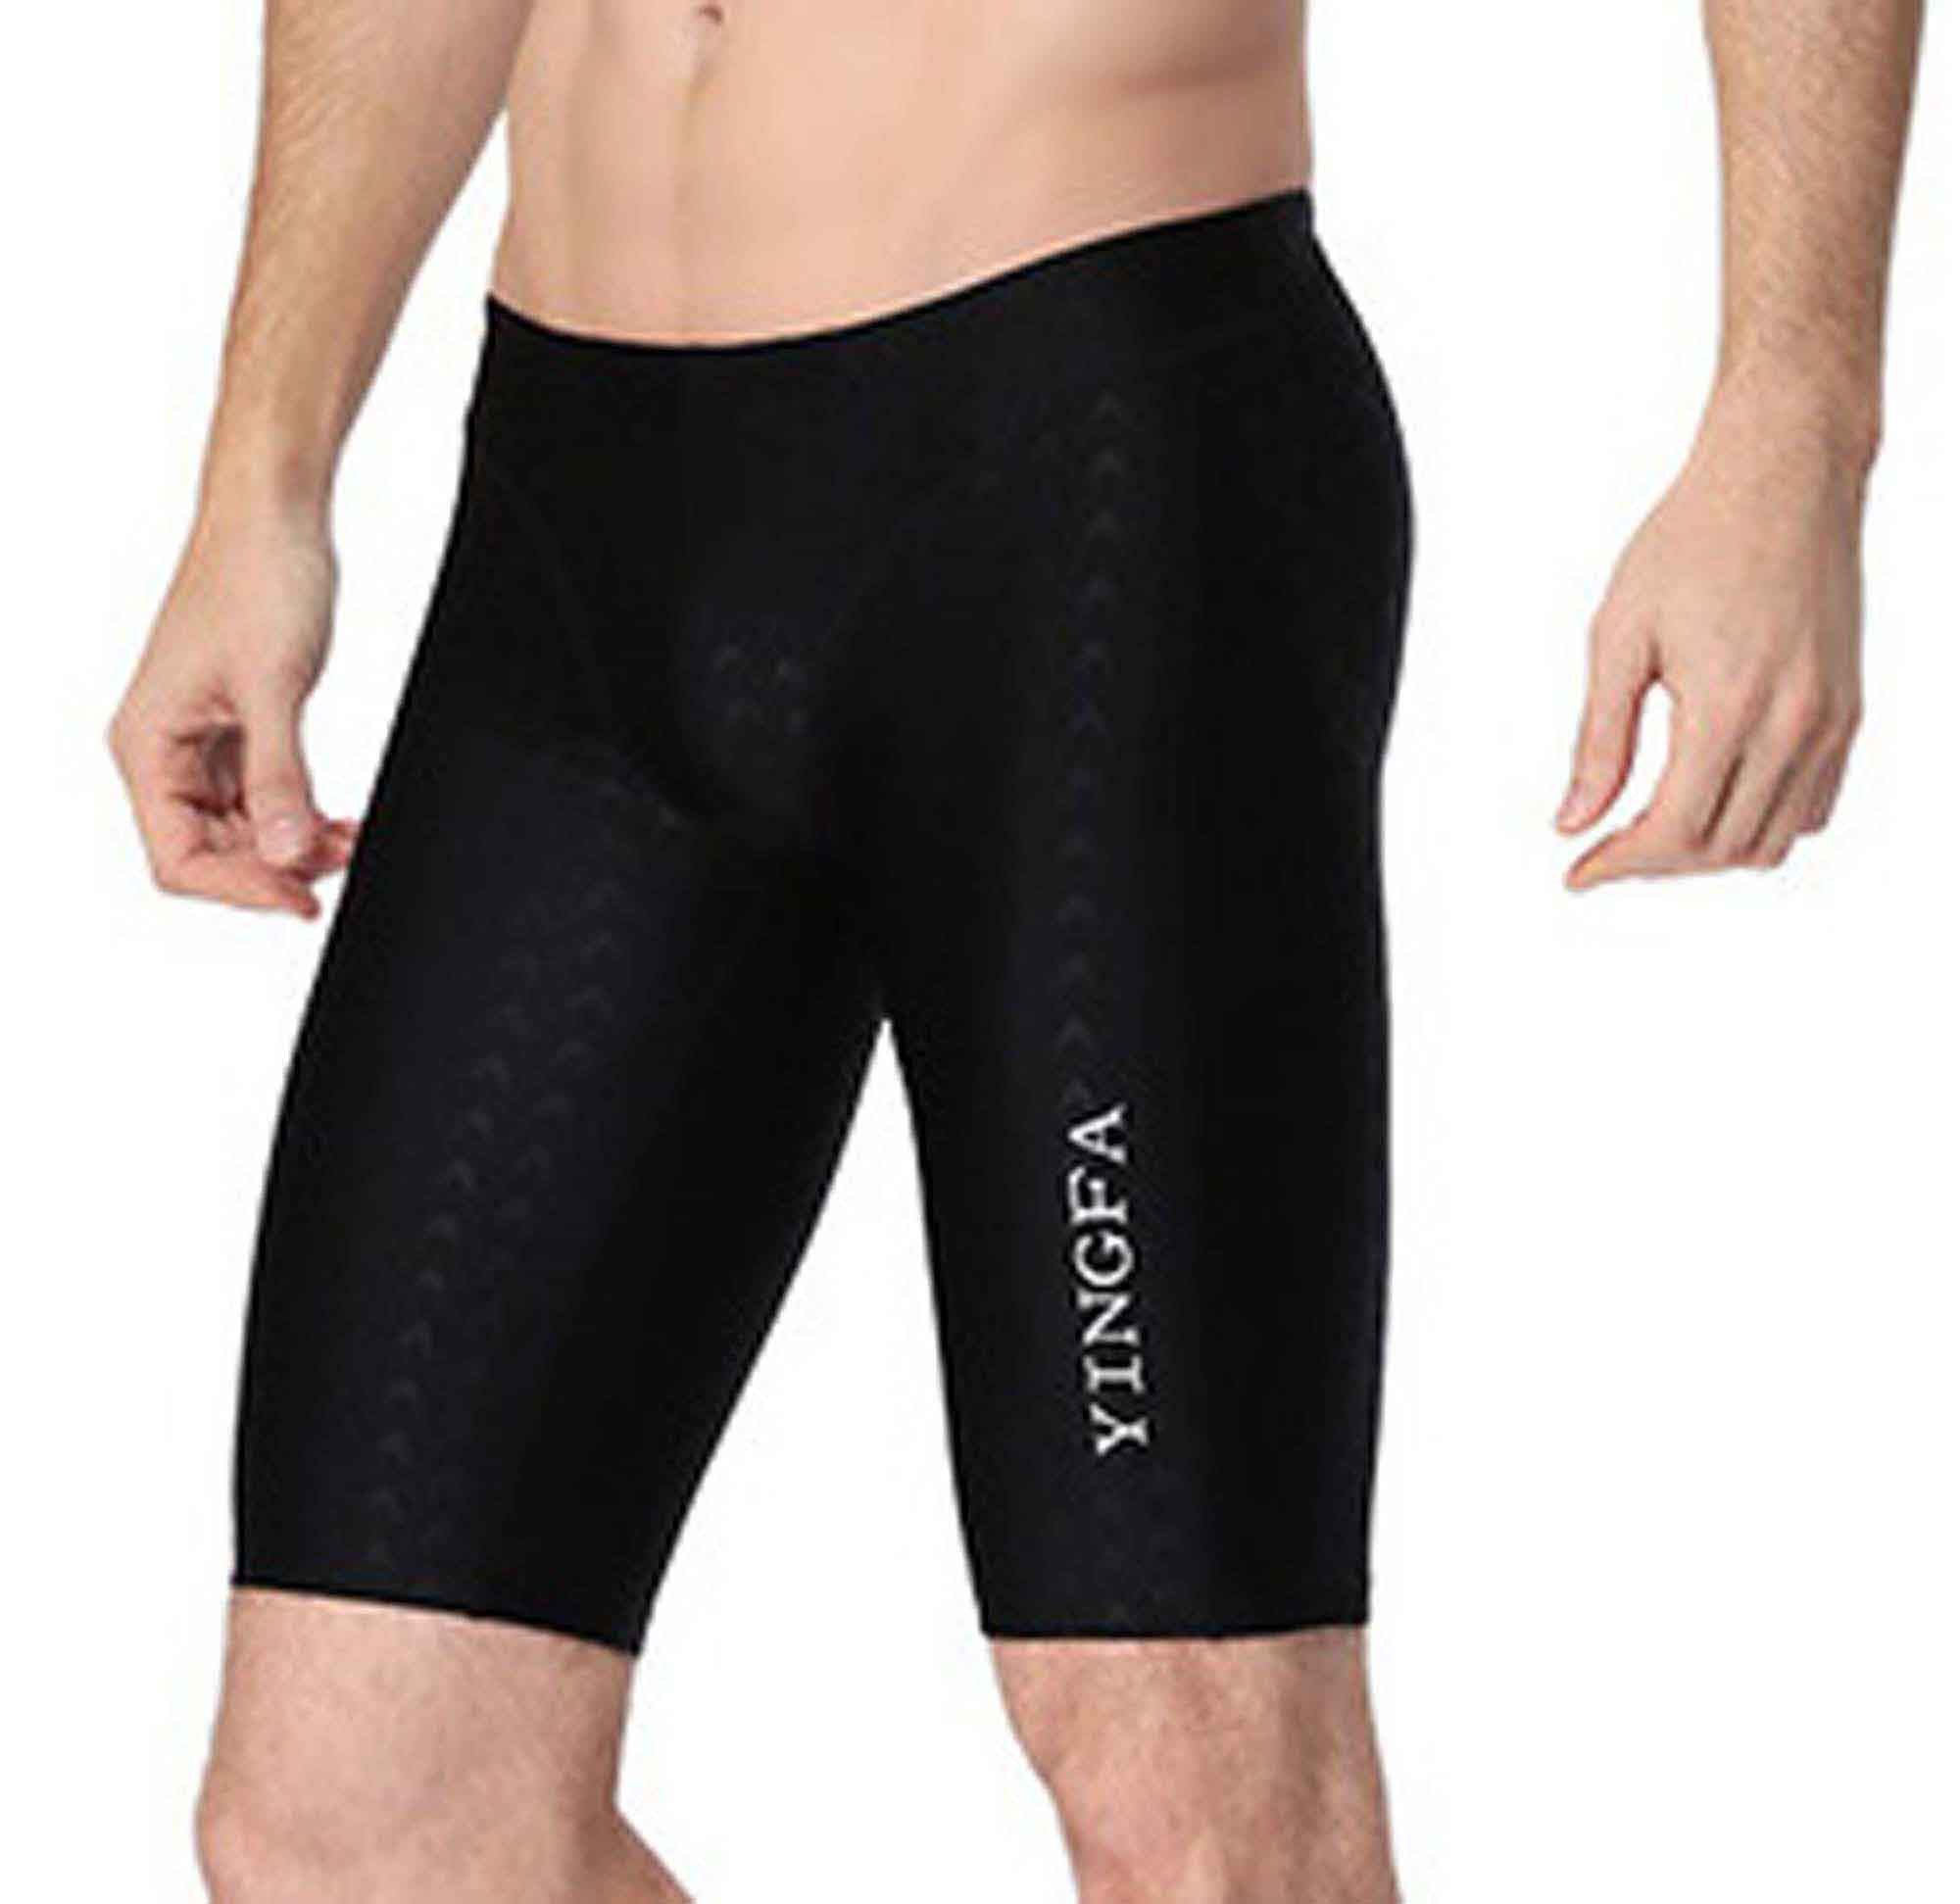 b4f932a918 Sharkskin men's racing & training swimming jammers FINA APPROVED swimming  trunks, Yingfa 9205-1